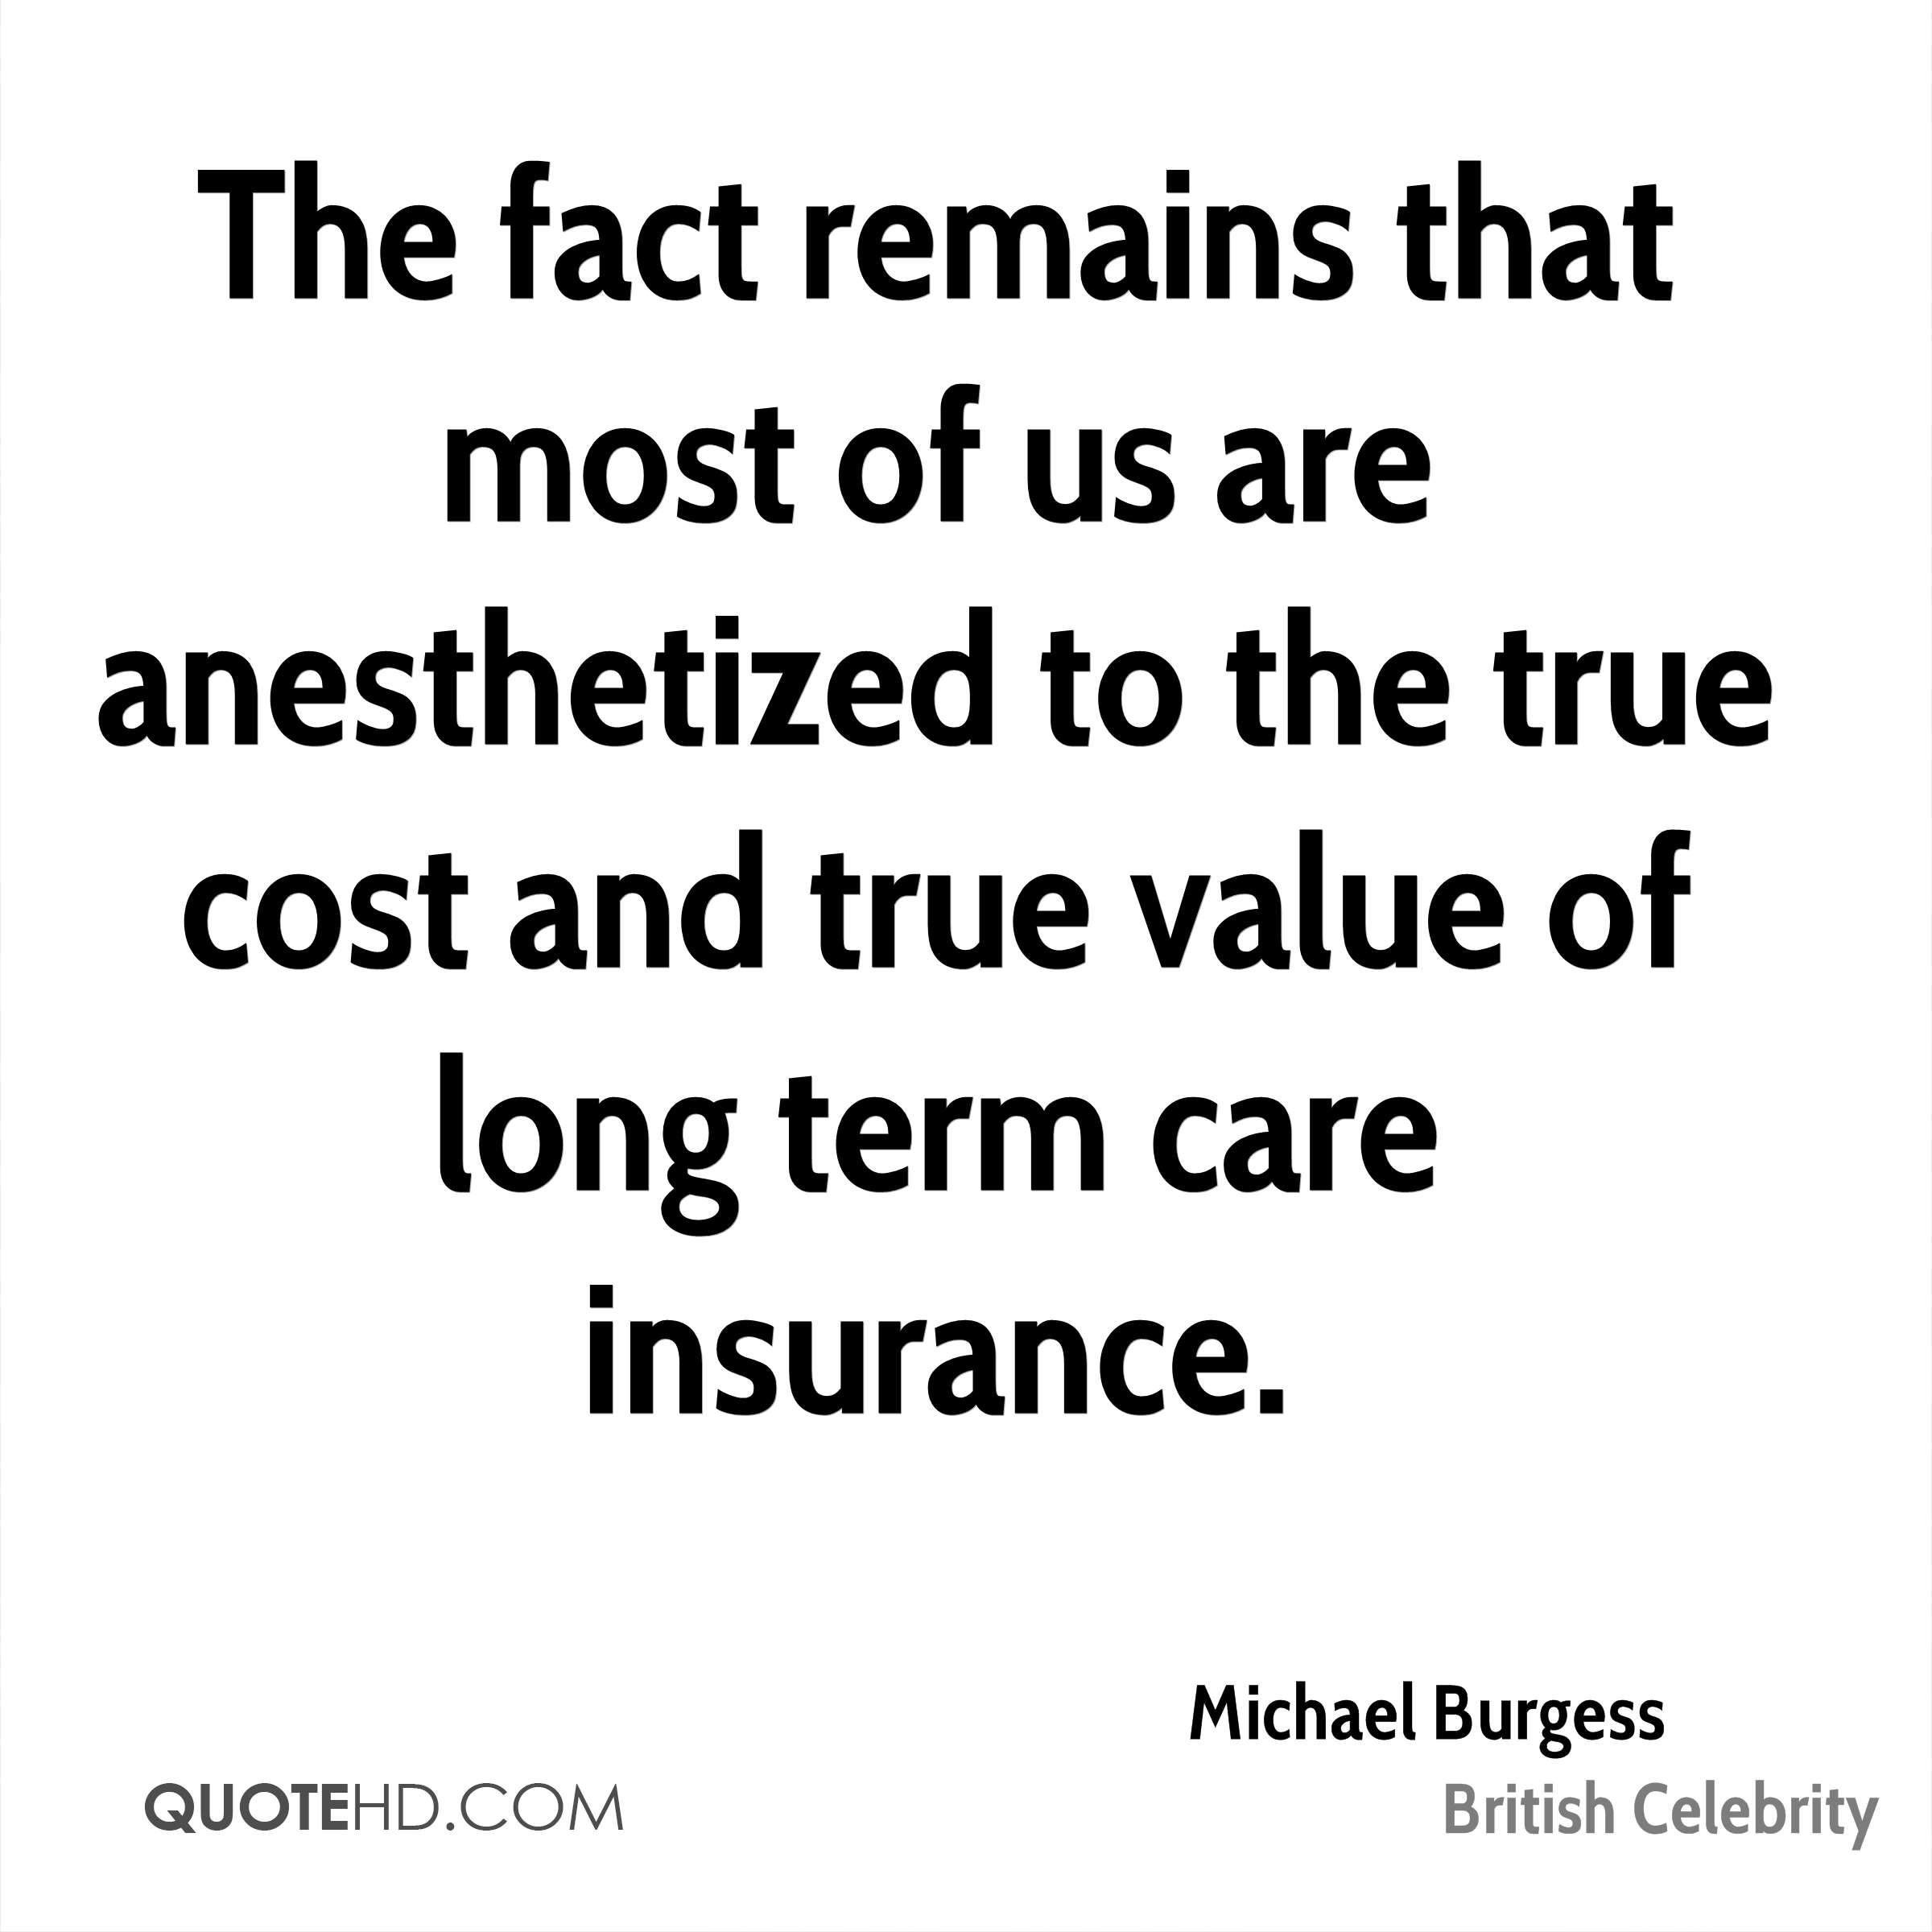 The fact remains that most of us are anesthetized to the true cost and true value of long term care insurance.